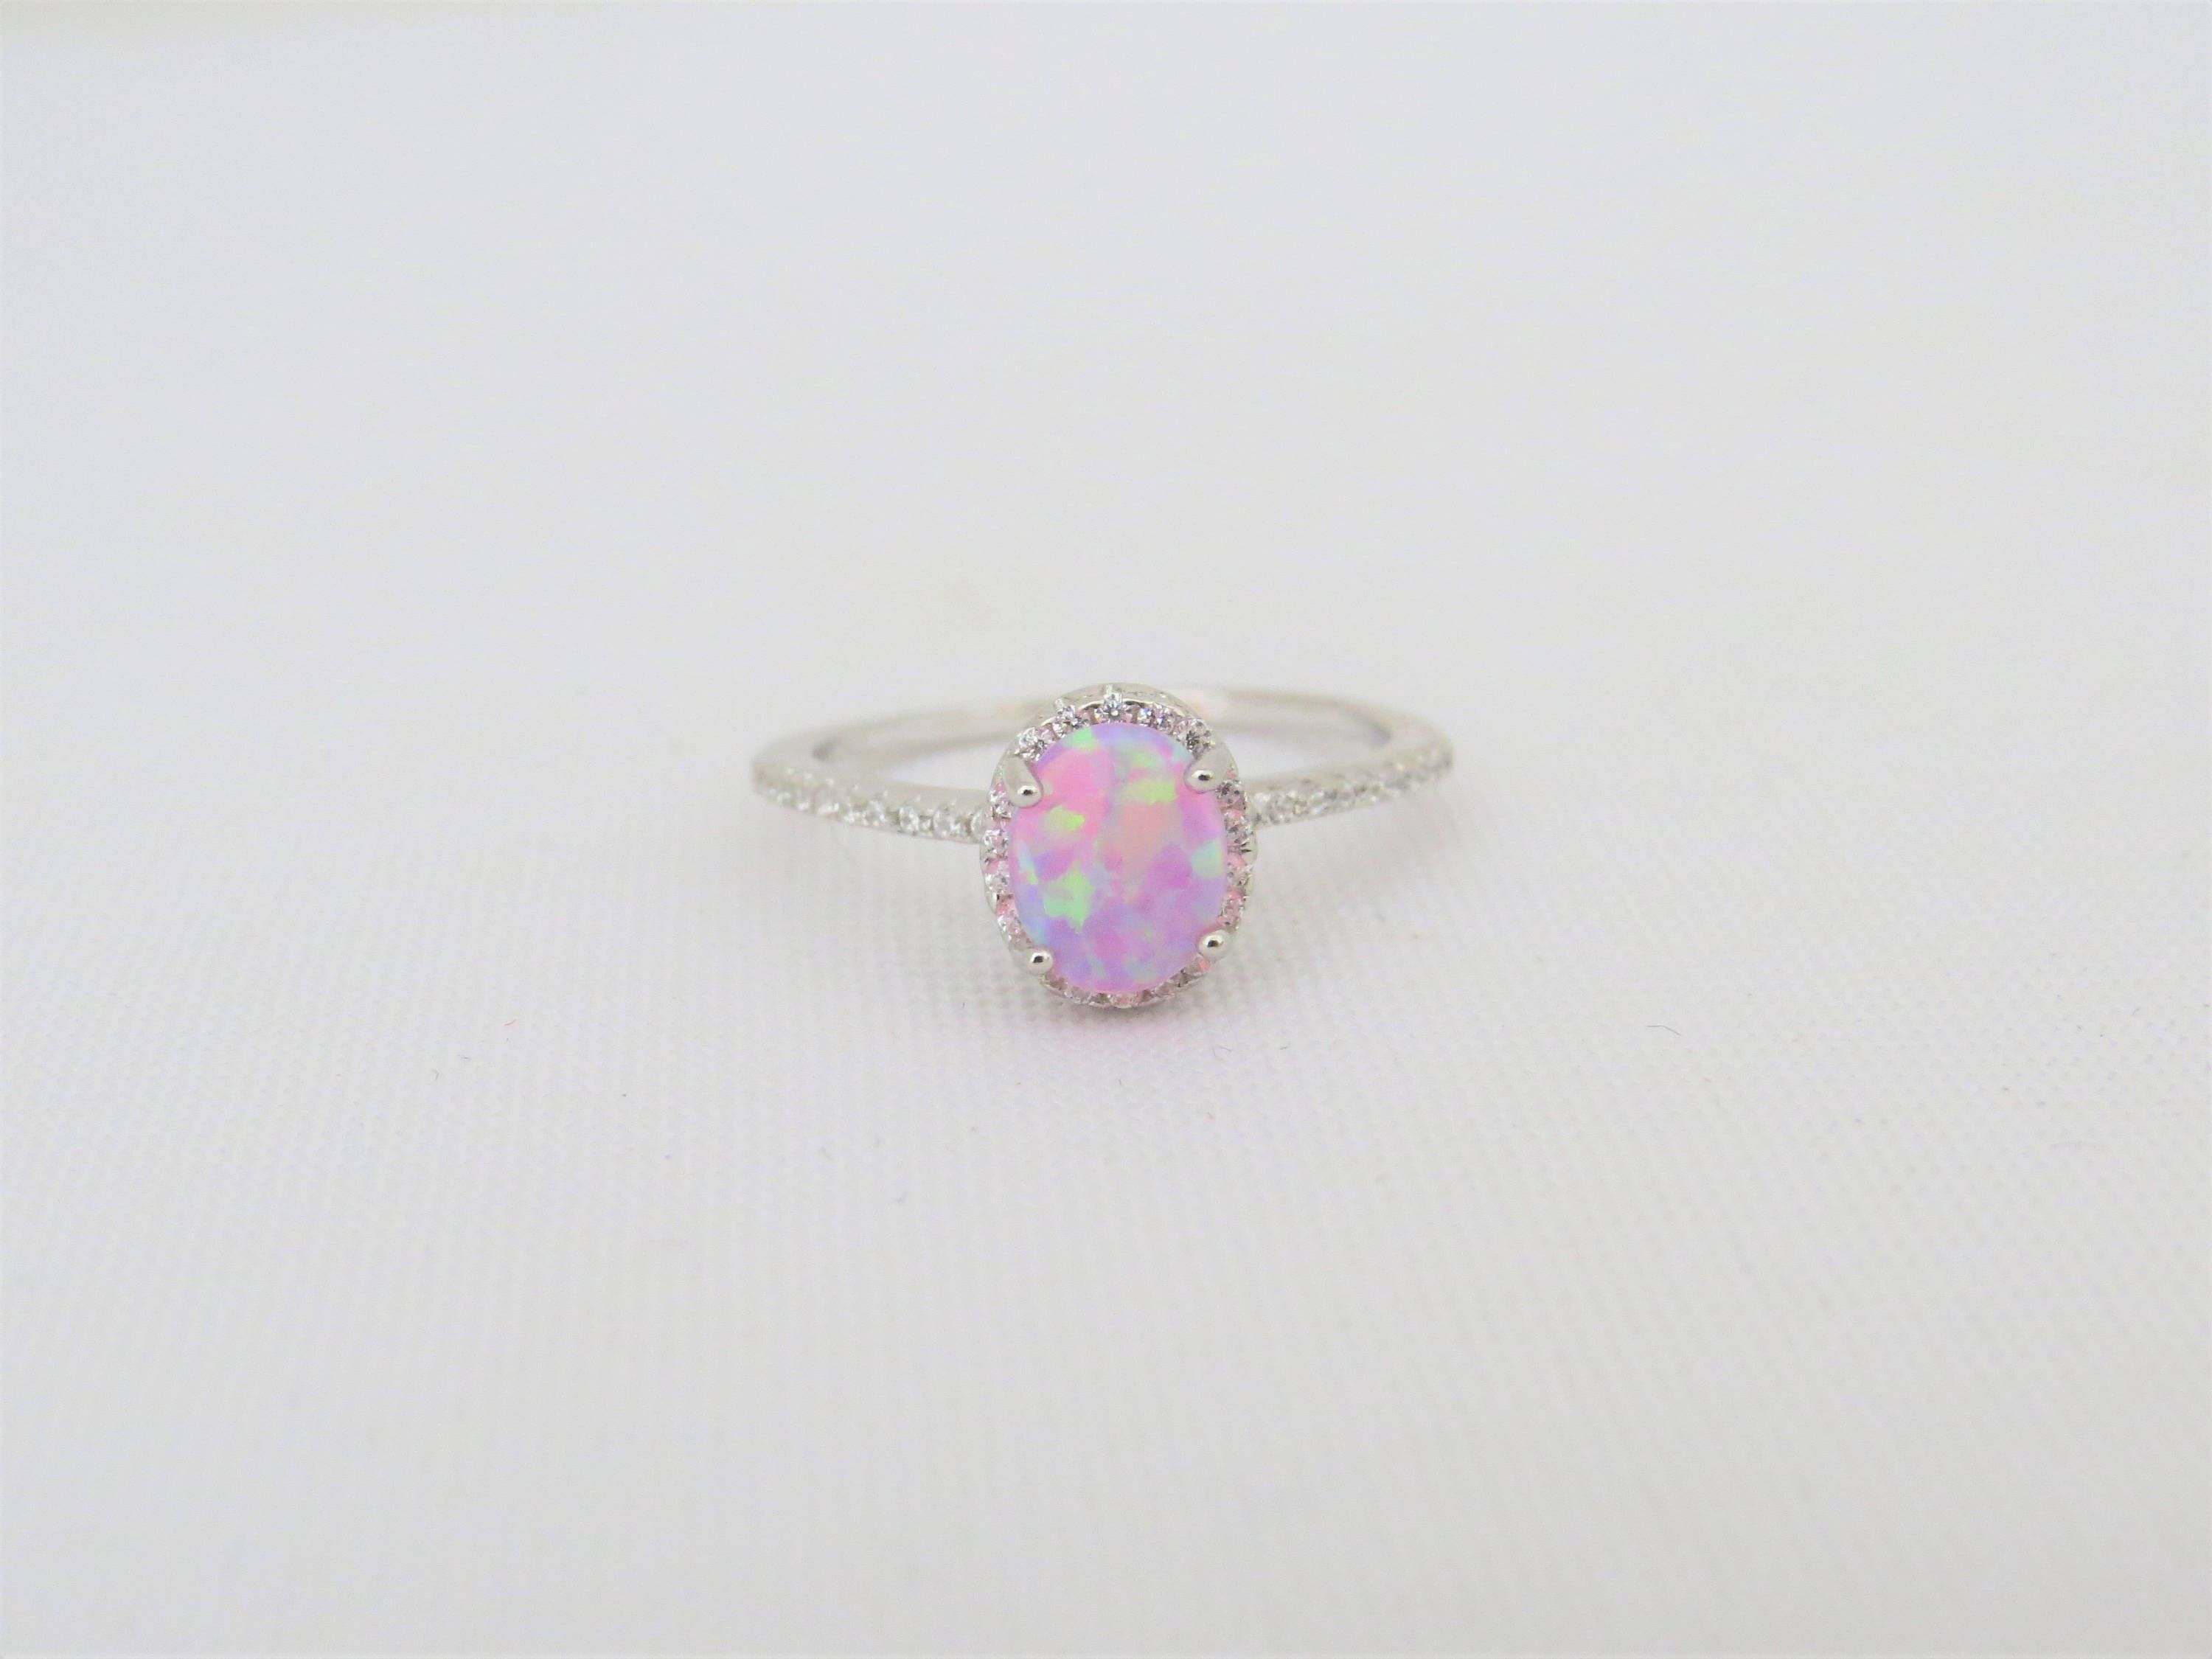 Vintage Sterling Silver White Opal /& White Topaz Engagement Ring Size 7